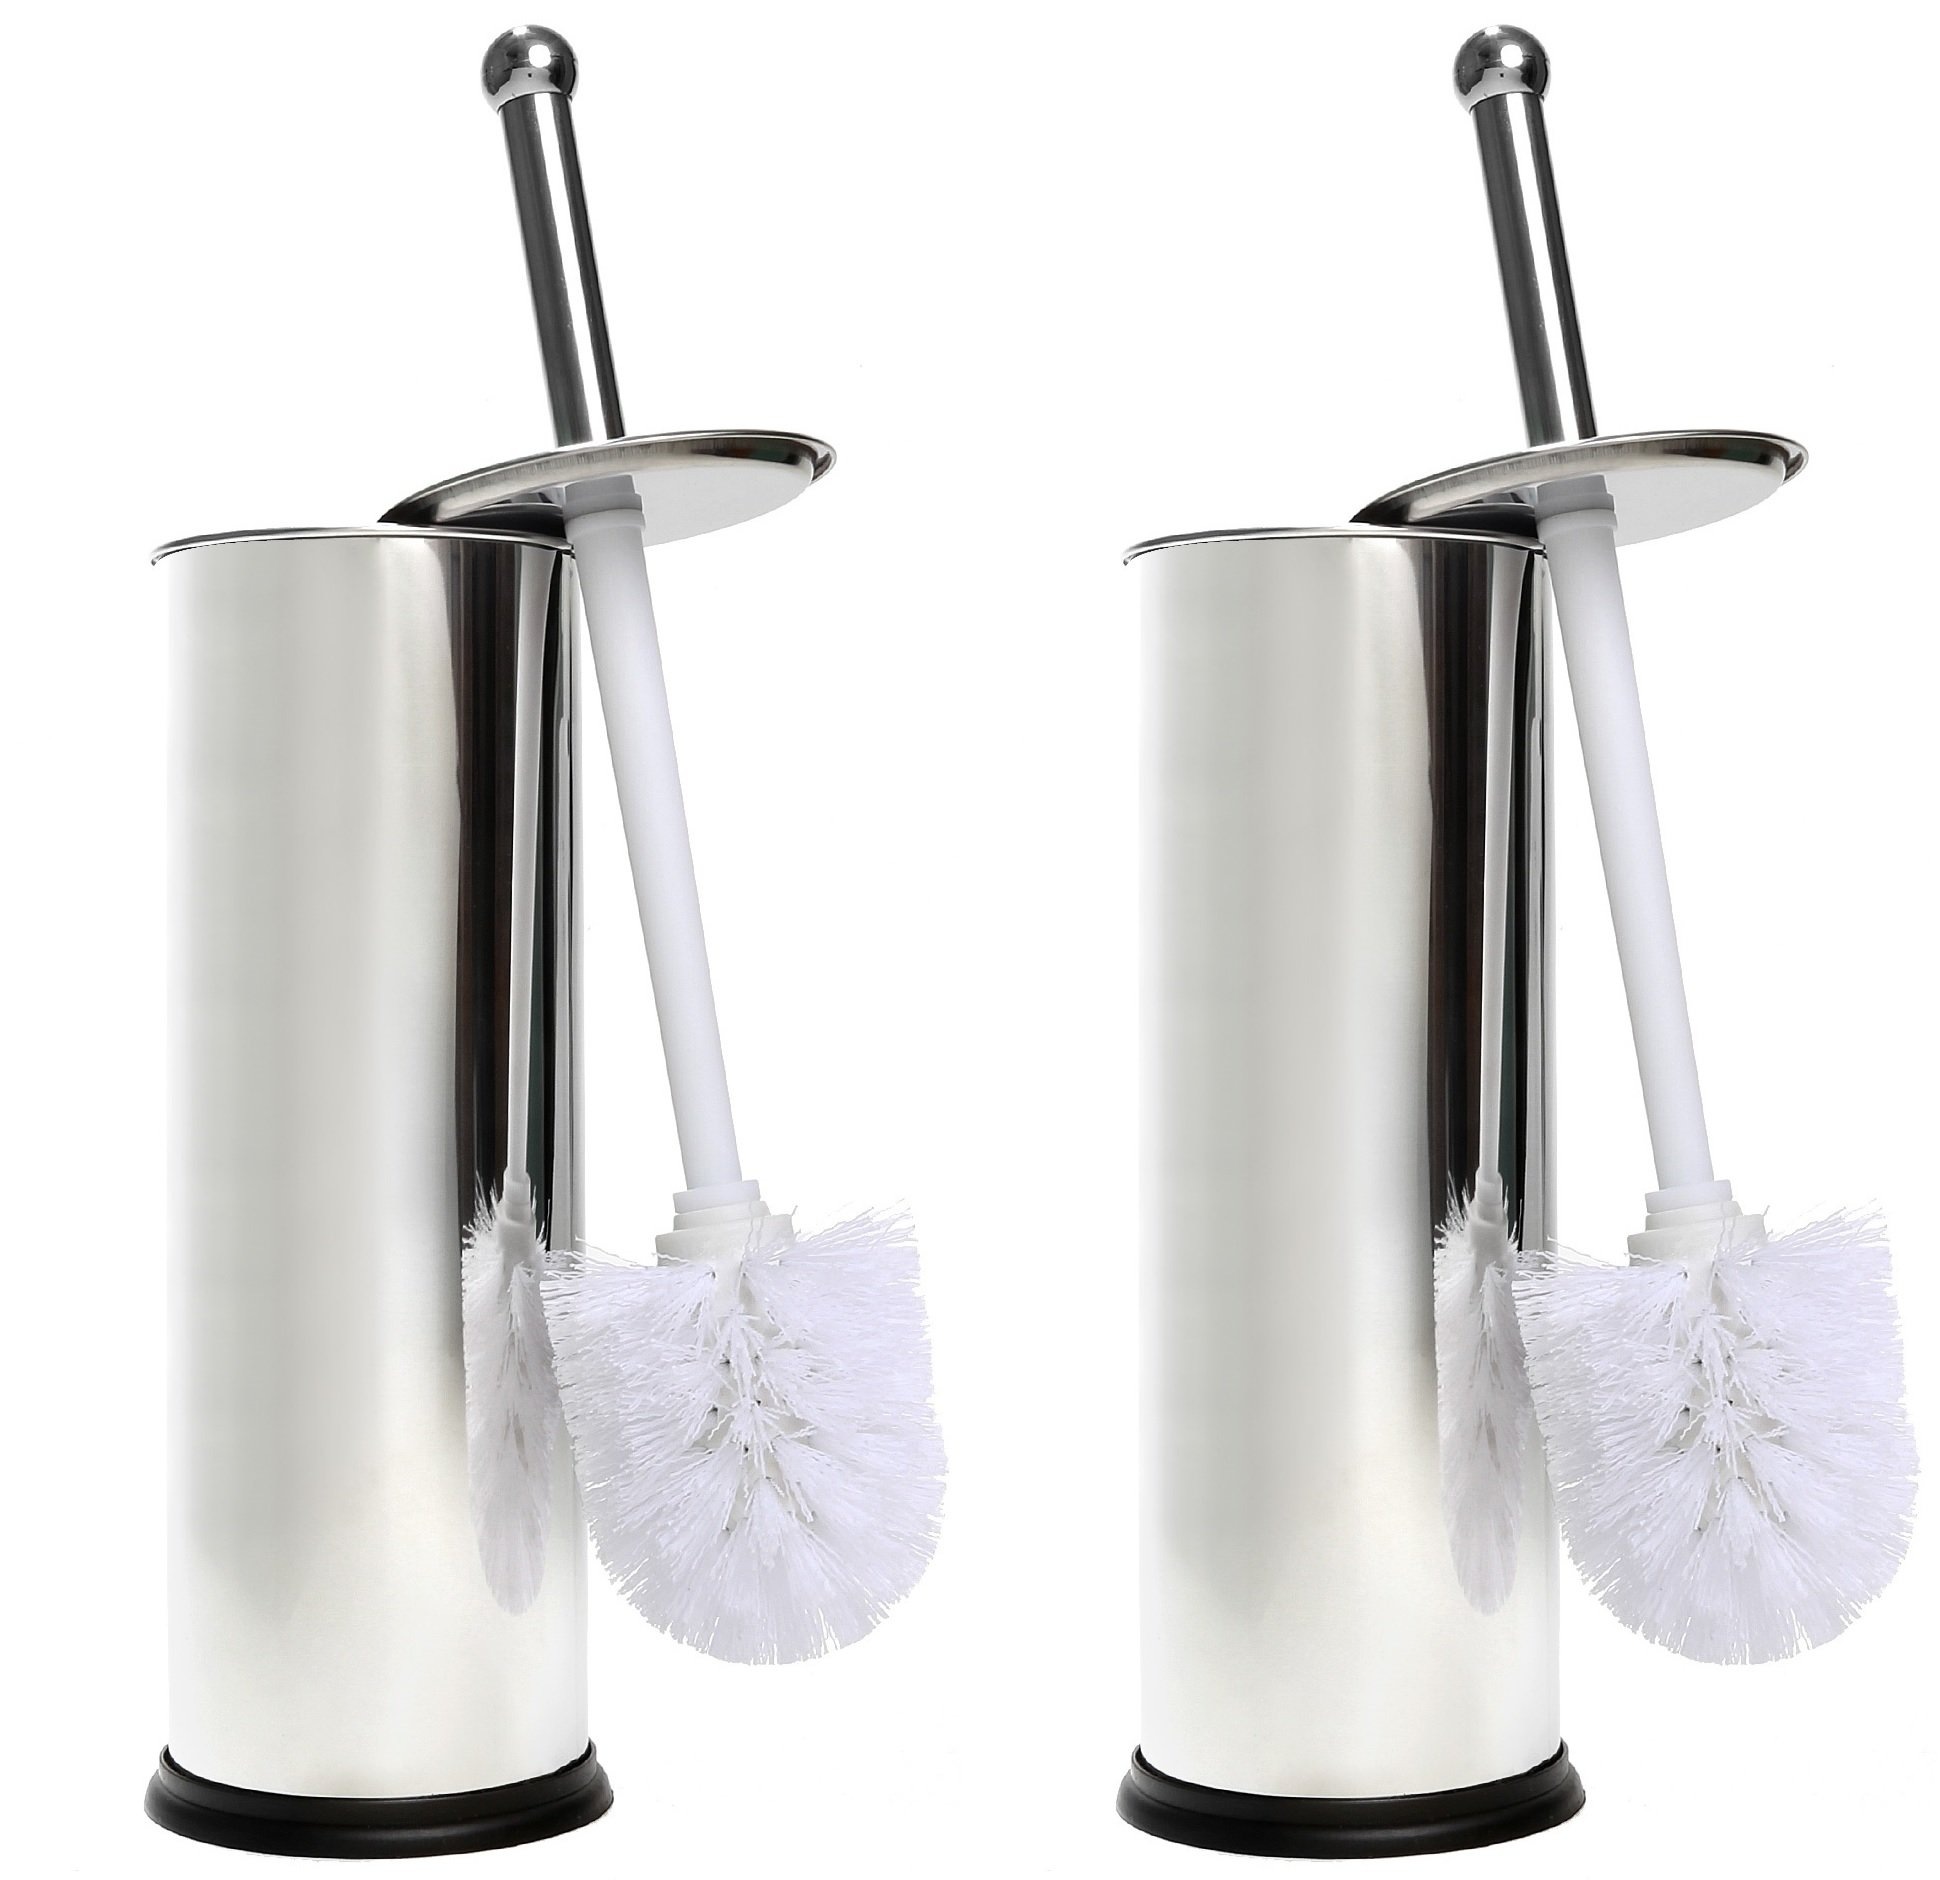 Home Intuition Chrome Toilet Brush and Holder, 2 Pack